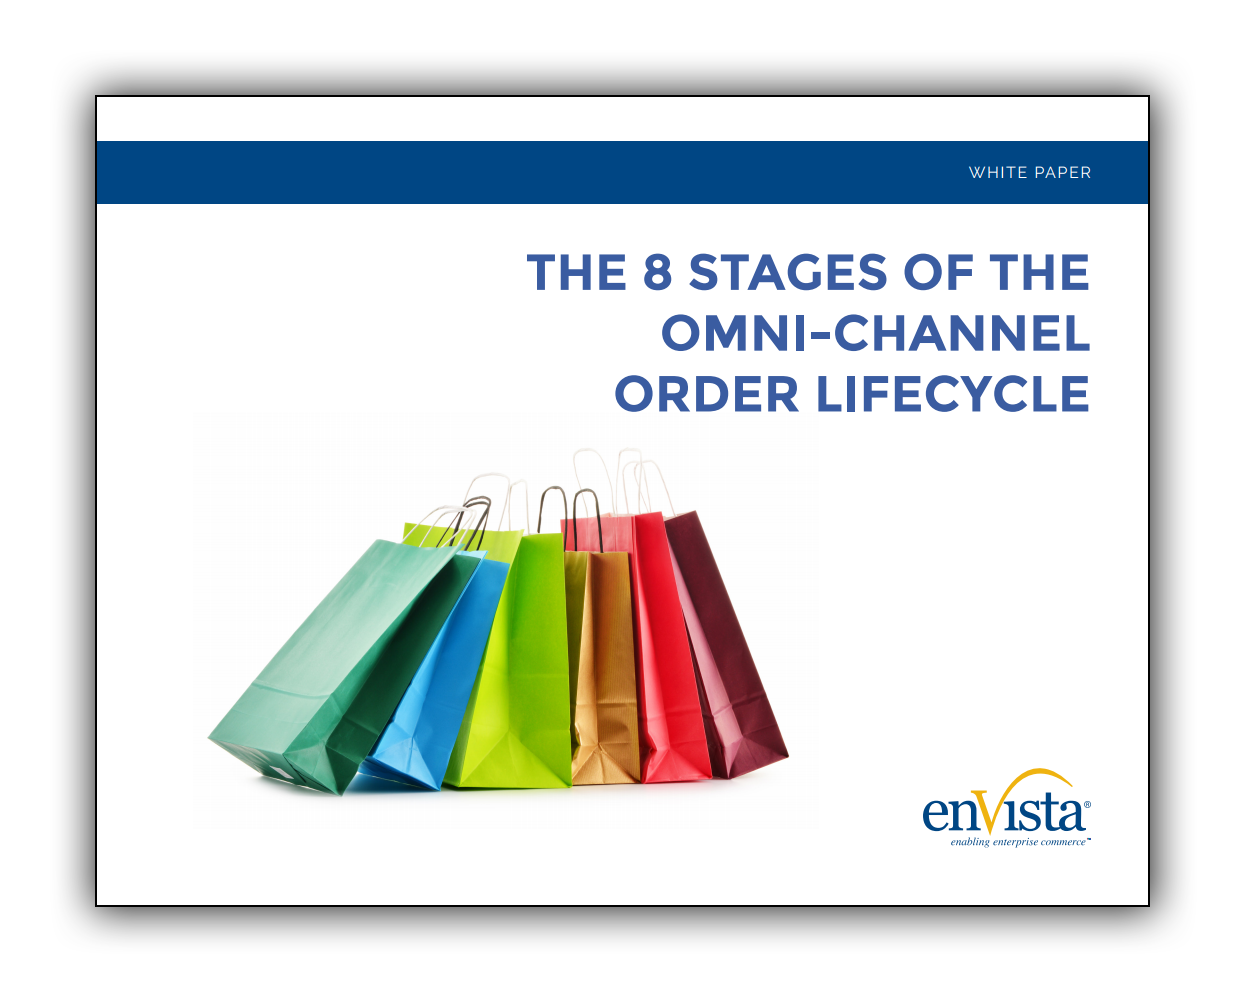 Image_8-stages-of-the-omni-channel-order-lifecycle.png